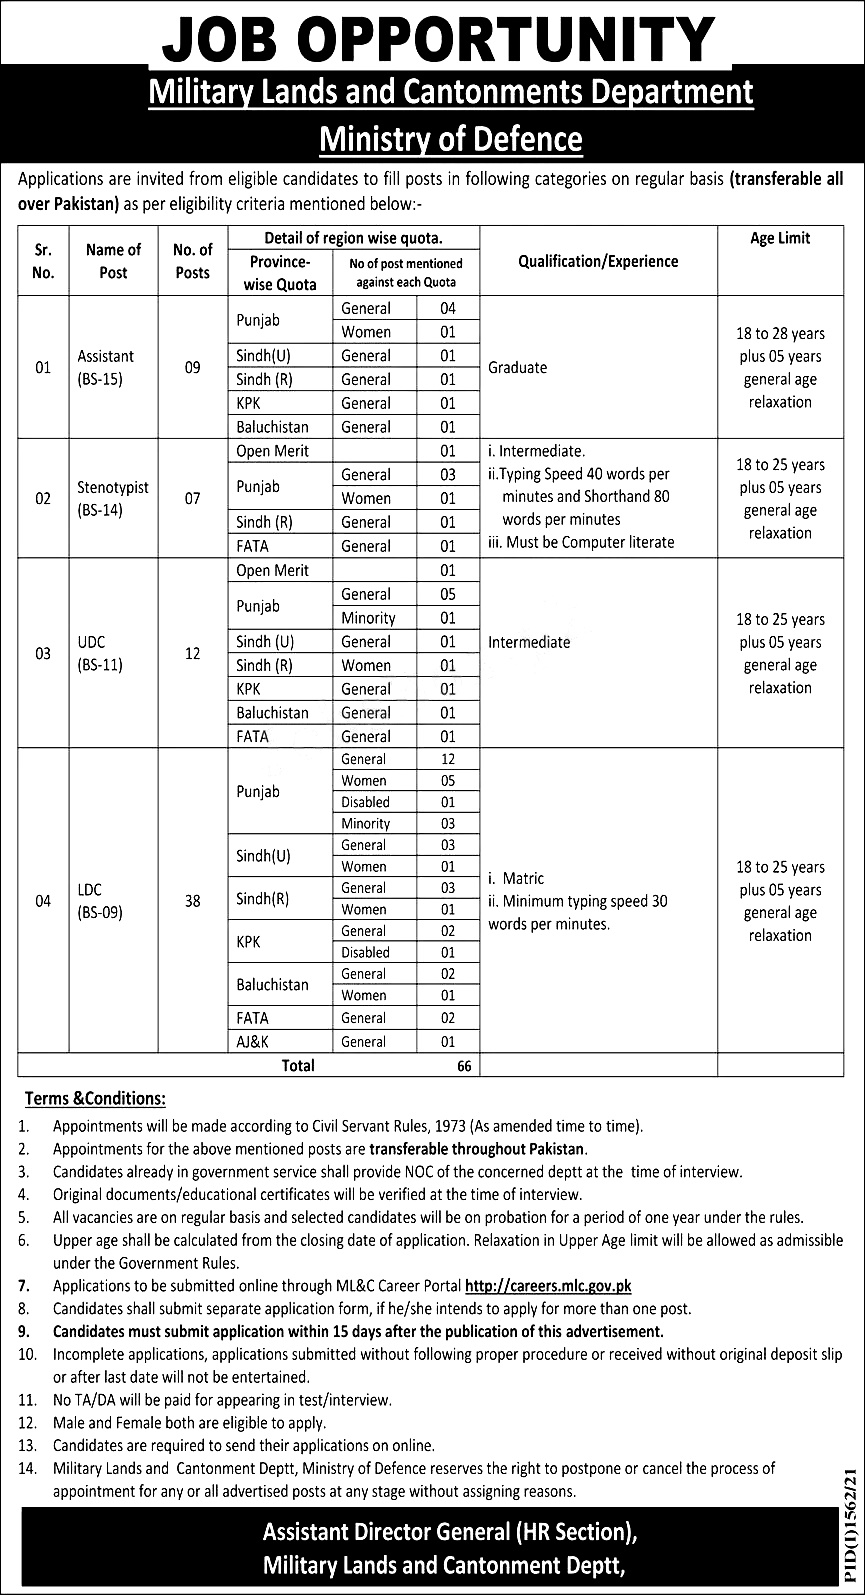 Military Land and Cantonment Department Lahore Jobs 2021 Ministry of Defence Written Test/Interview Application Eligibility Last Date